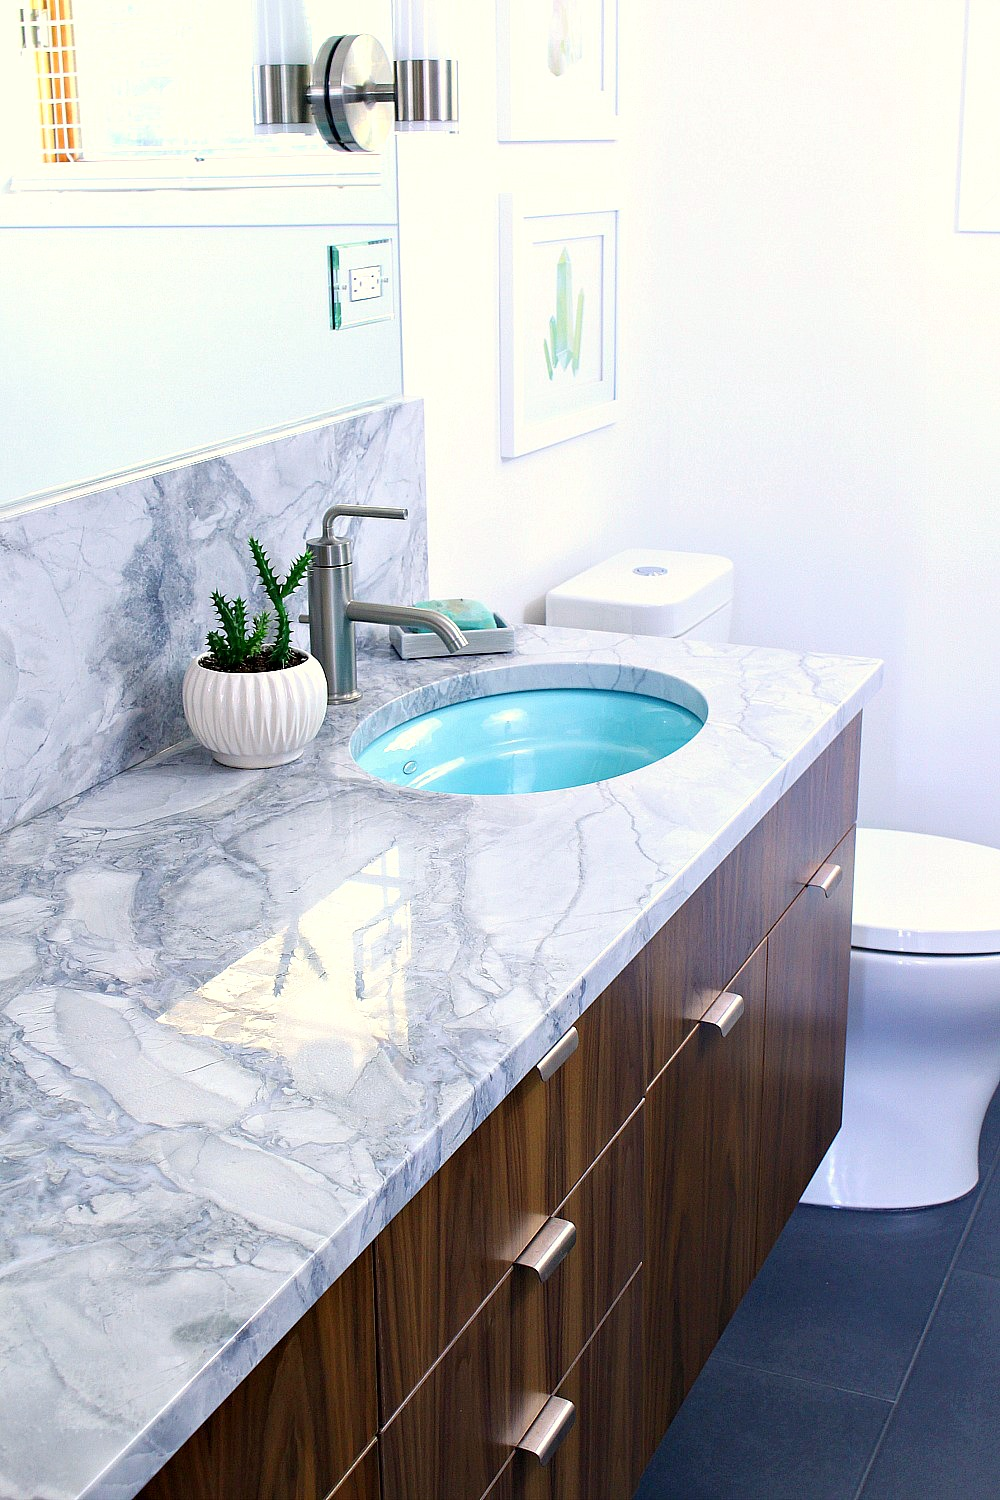 Mid-Century Modern Inspired Bathroom Renovation, Before + After - Floating Walnut Vanity, Quartzite Counters, Kohler Purist Fixtures, Aqua Sinks - from www.danslelakehouse.com